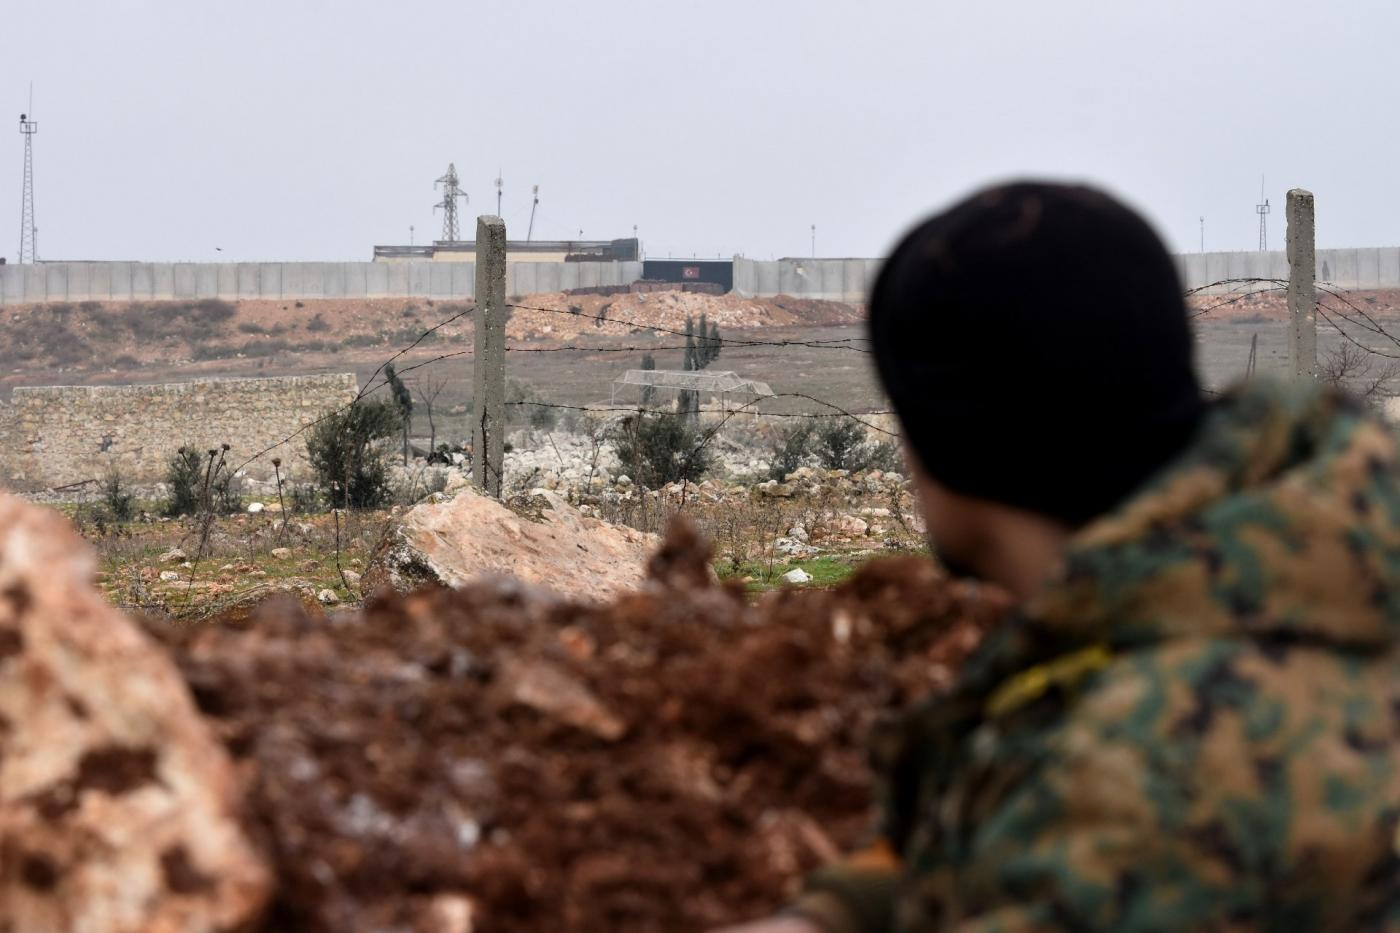 EXCLUSIVE: Turkey to abandon some observation stations in Syria's Idlib